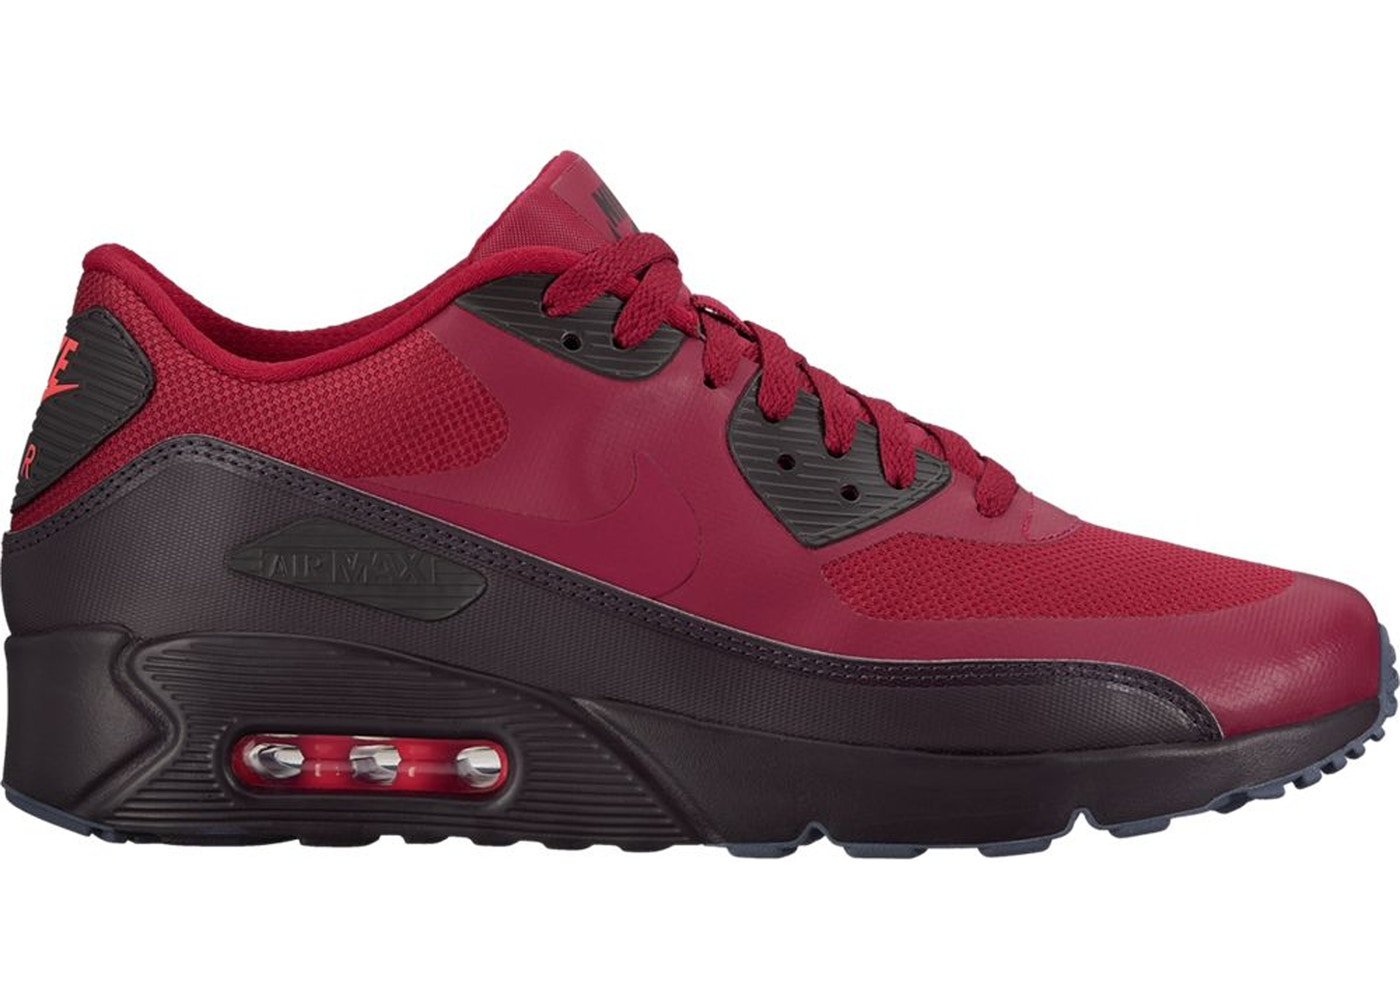 c62aed6559 ... 881105-603 - sneakAvenue; Nike Air Max 90 Hyperfuse Prem Port Wine; Air  Max 90 Ultra 2.0 Noble Red Port Wine ...